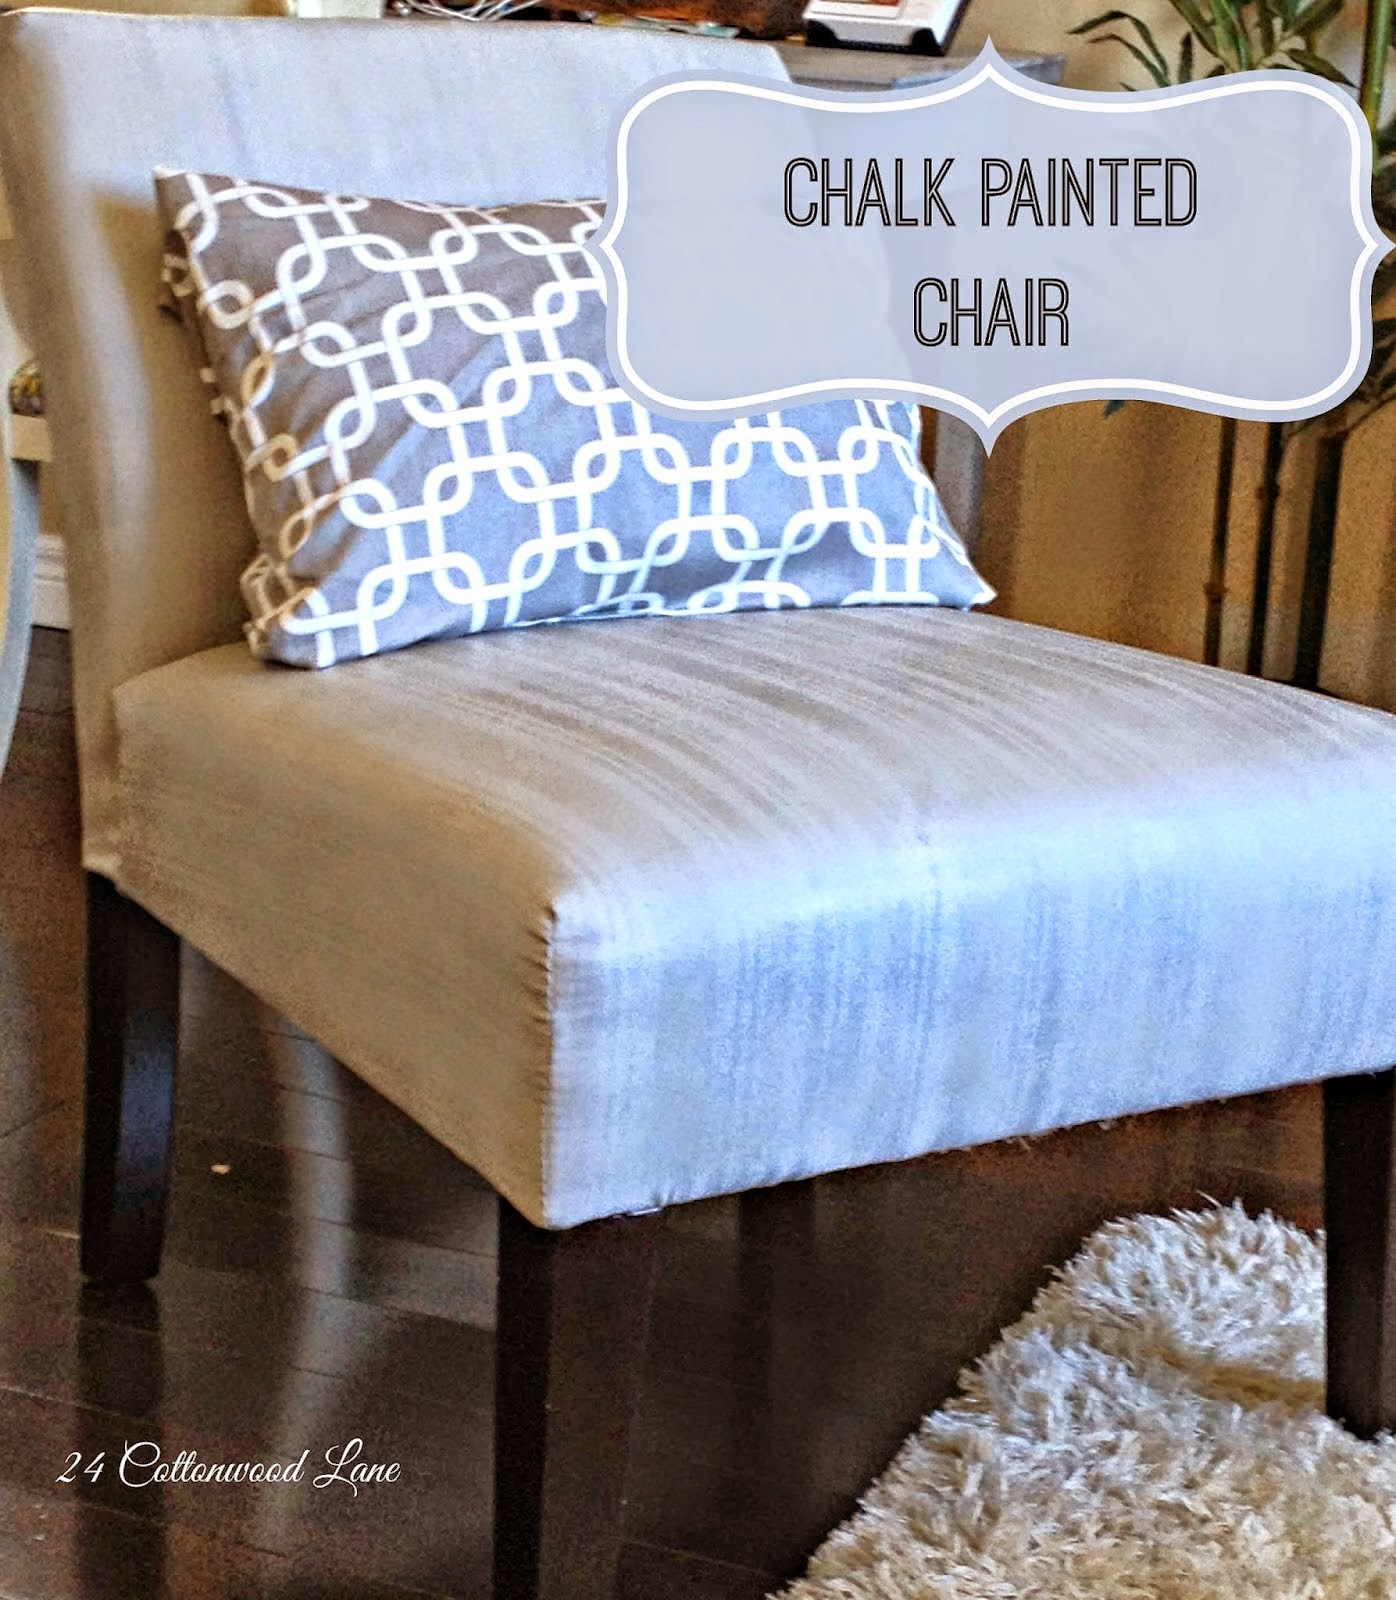 http://24cottonwoodlane.blogspot.ca/2014/04/chalk-painted-chair.html